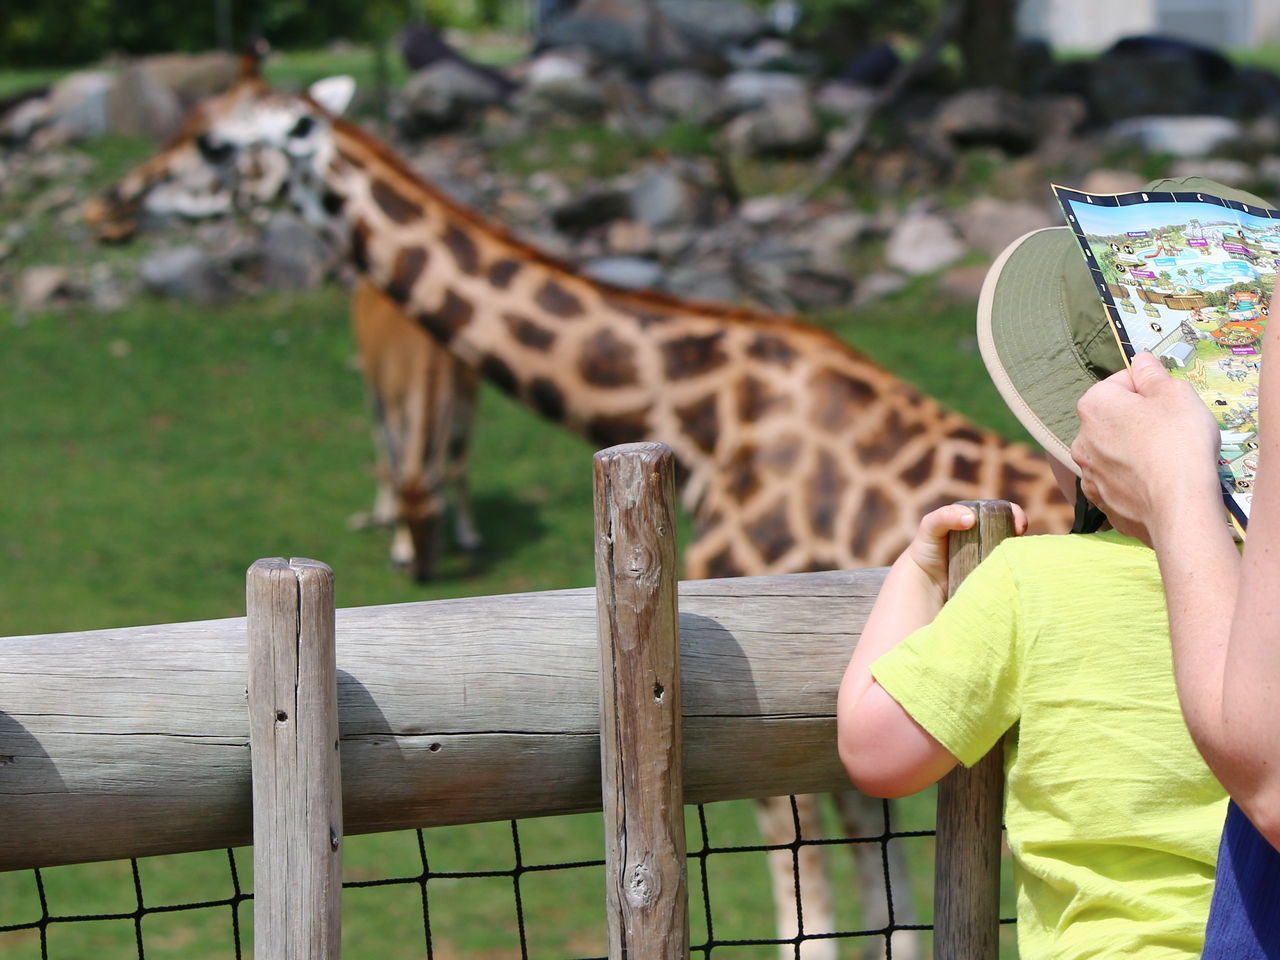 Animal Themes Animal Wildlife Animals In The Wild Child Education Focus On Foreground Giraffe Human Hand Learning One Animal Outdoors People Safari Teaching Travel Vacation Zoo